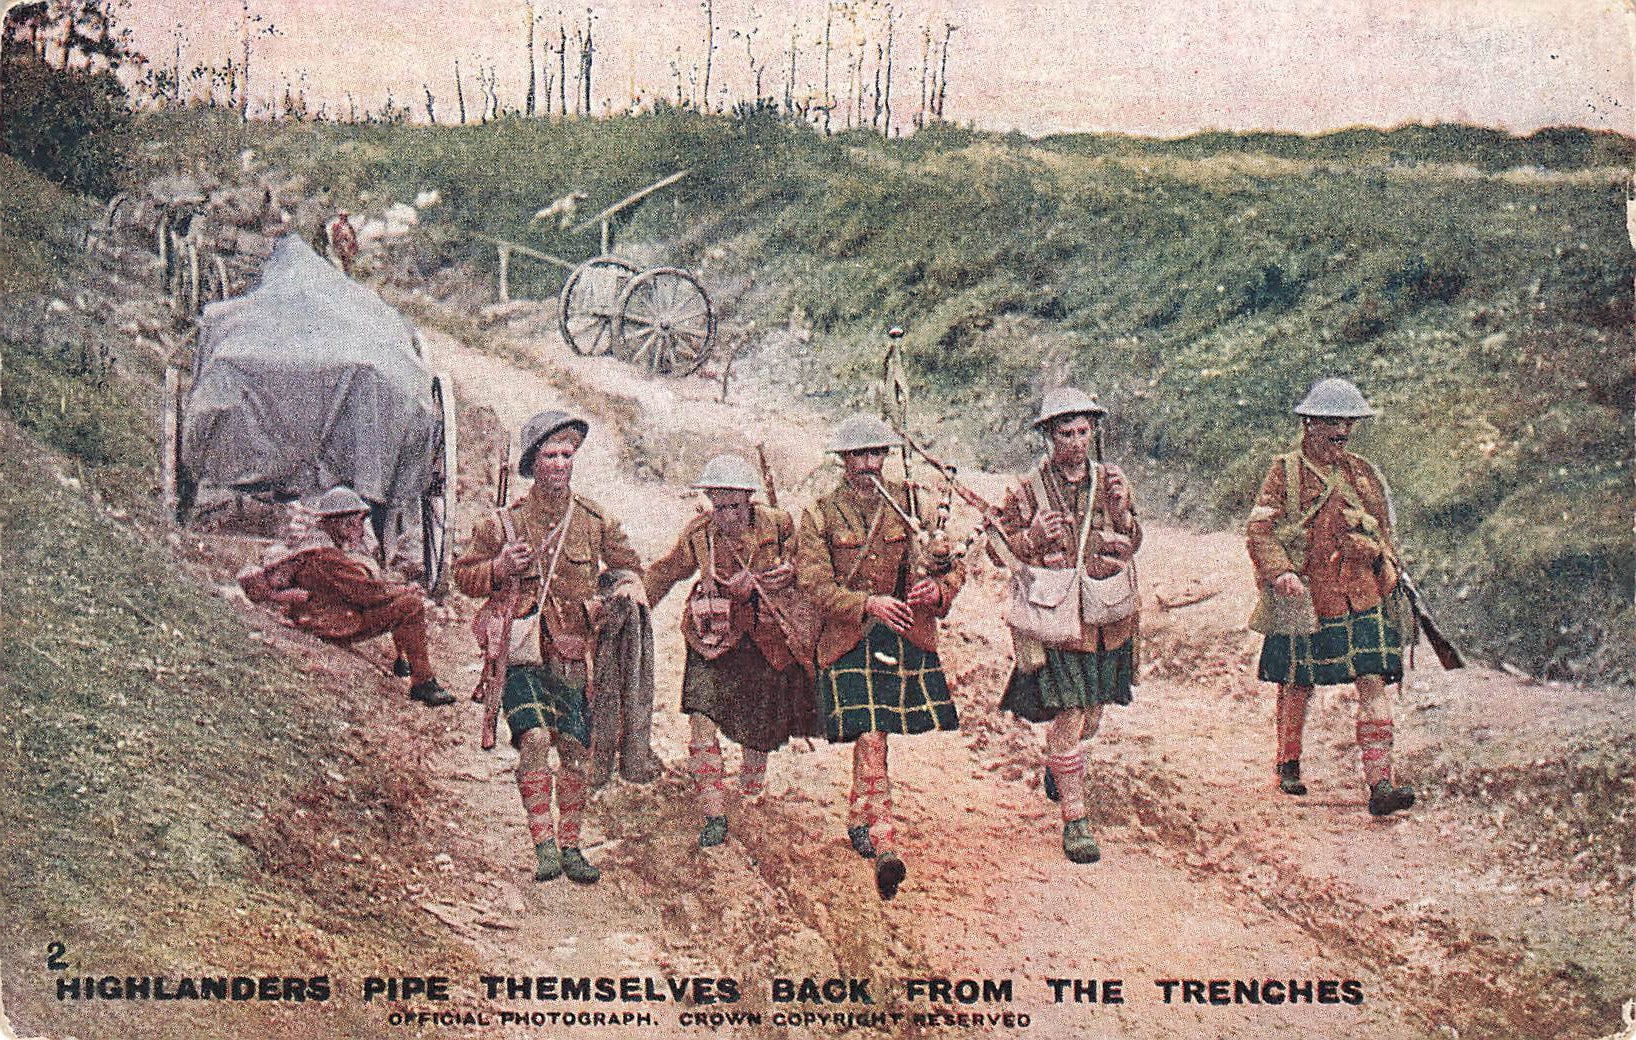 Military Postcard. Highlanders Pipe Themselves Back From The Trenches.